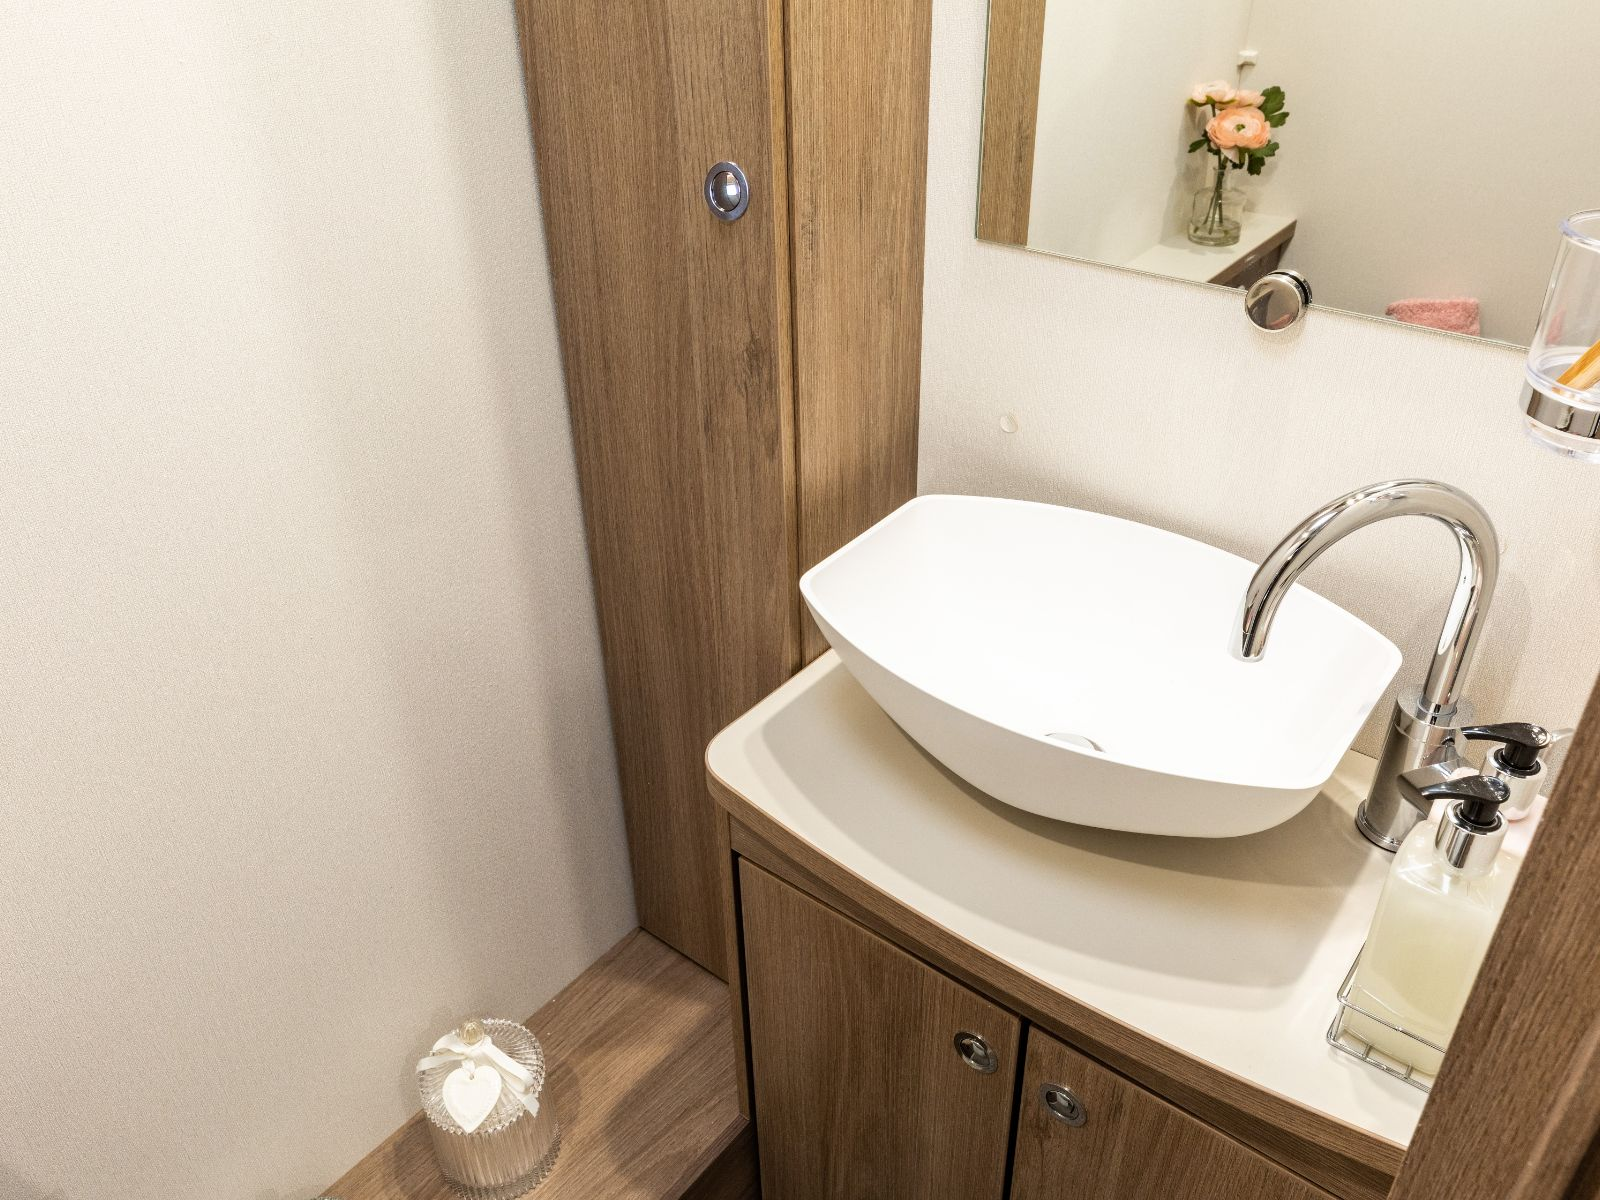 Bathroom sink with mirror above and toiletries storage on the left hand side'